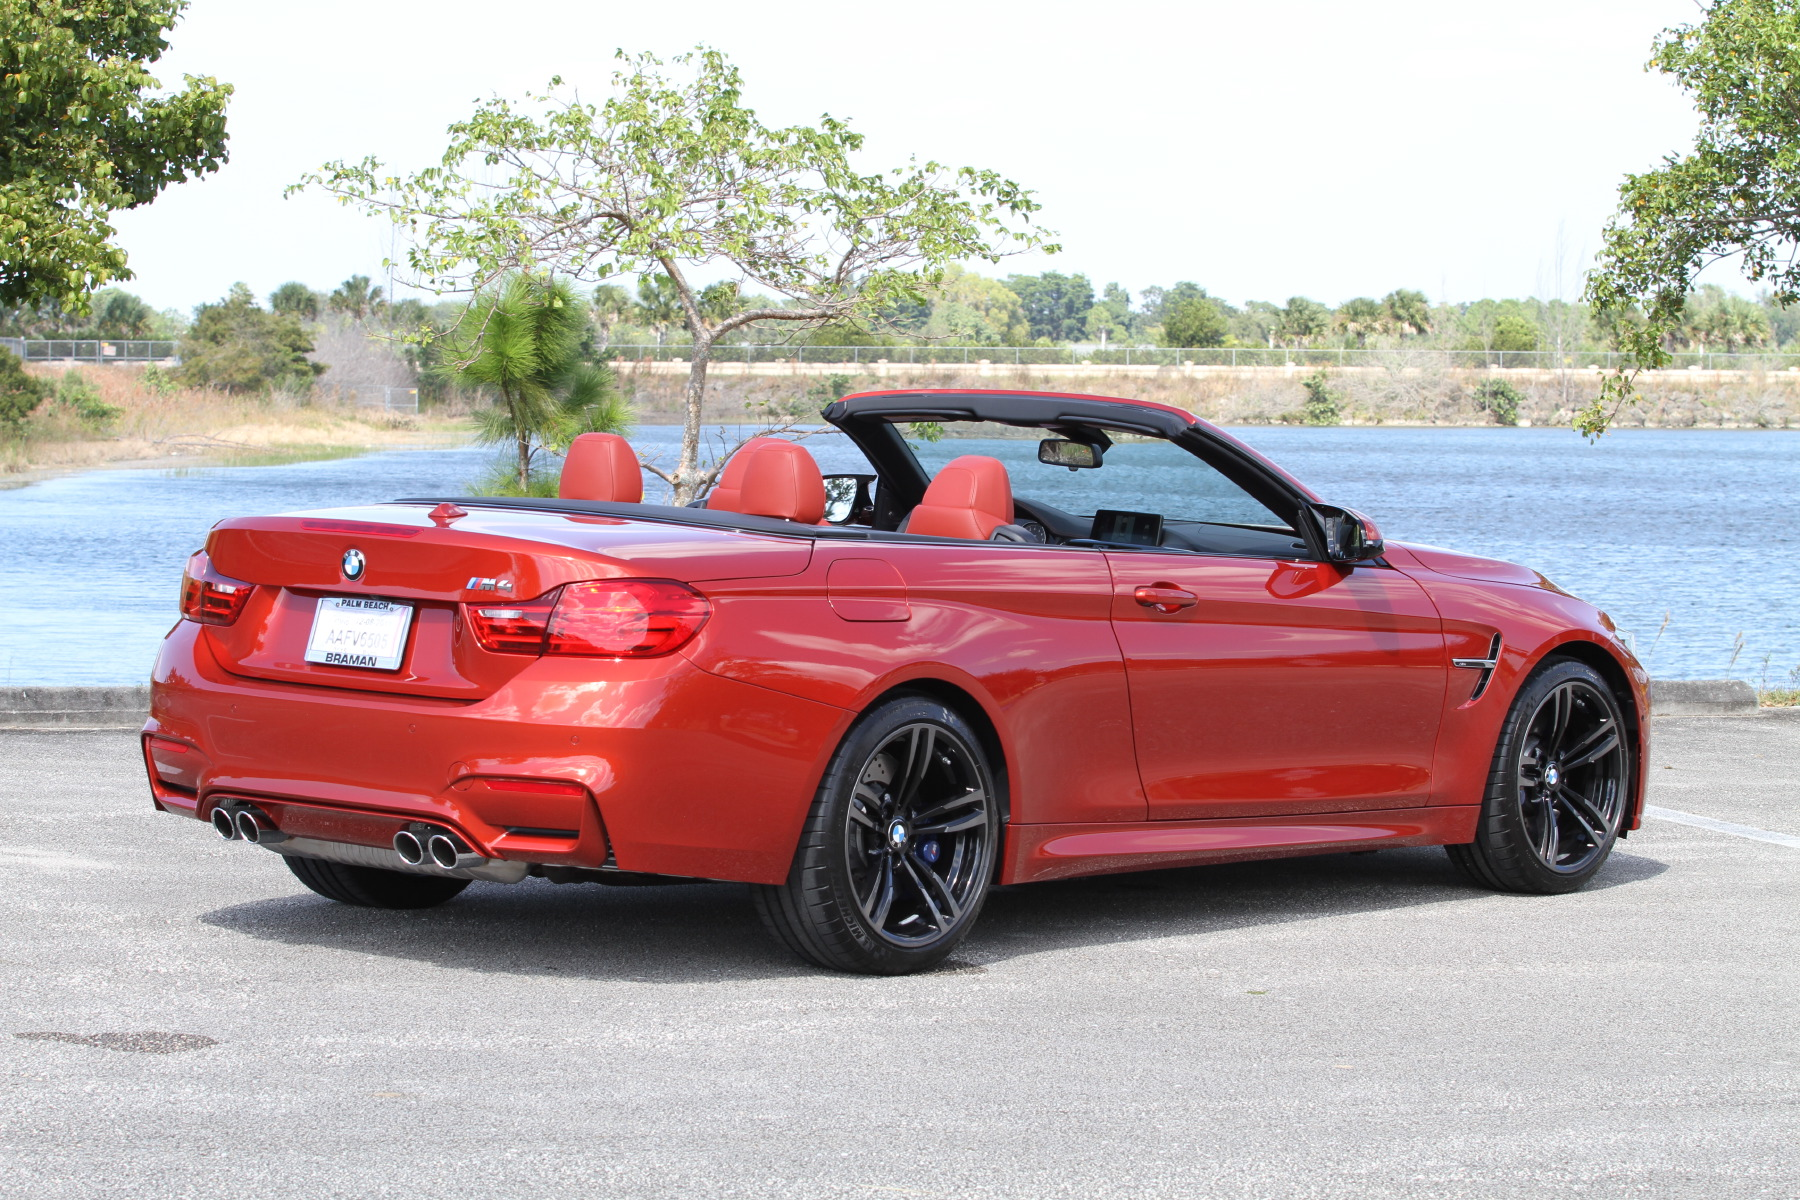 2015 Bmw M4 Convertible 1 4 Mile 0 60 Mph Testing Dragtimes Com Drag Racing Fast Cars